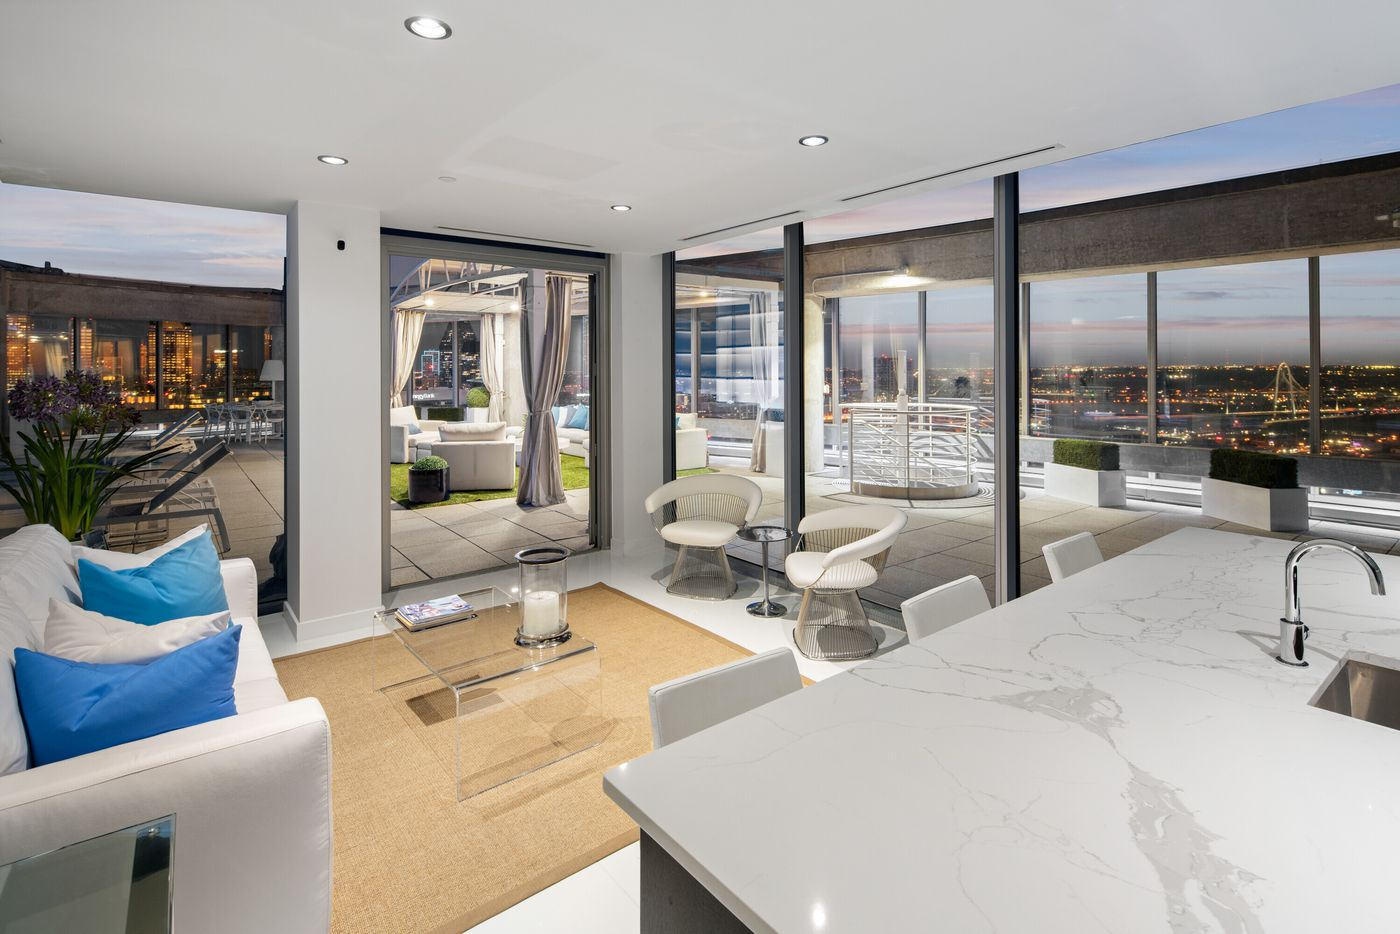 Take a look inside this two-level penthouse condo at the Azure, located at 2900 McKinnon St., Unit #3001 in Dallas.